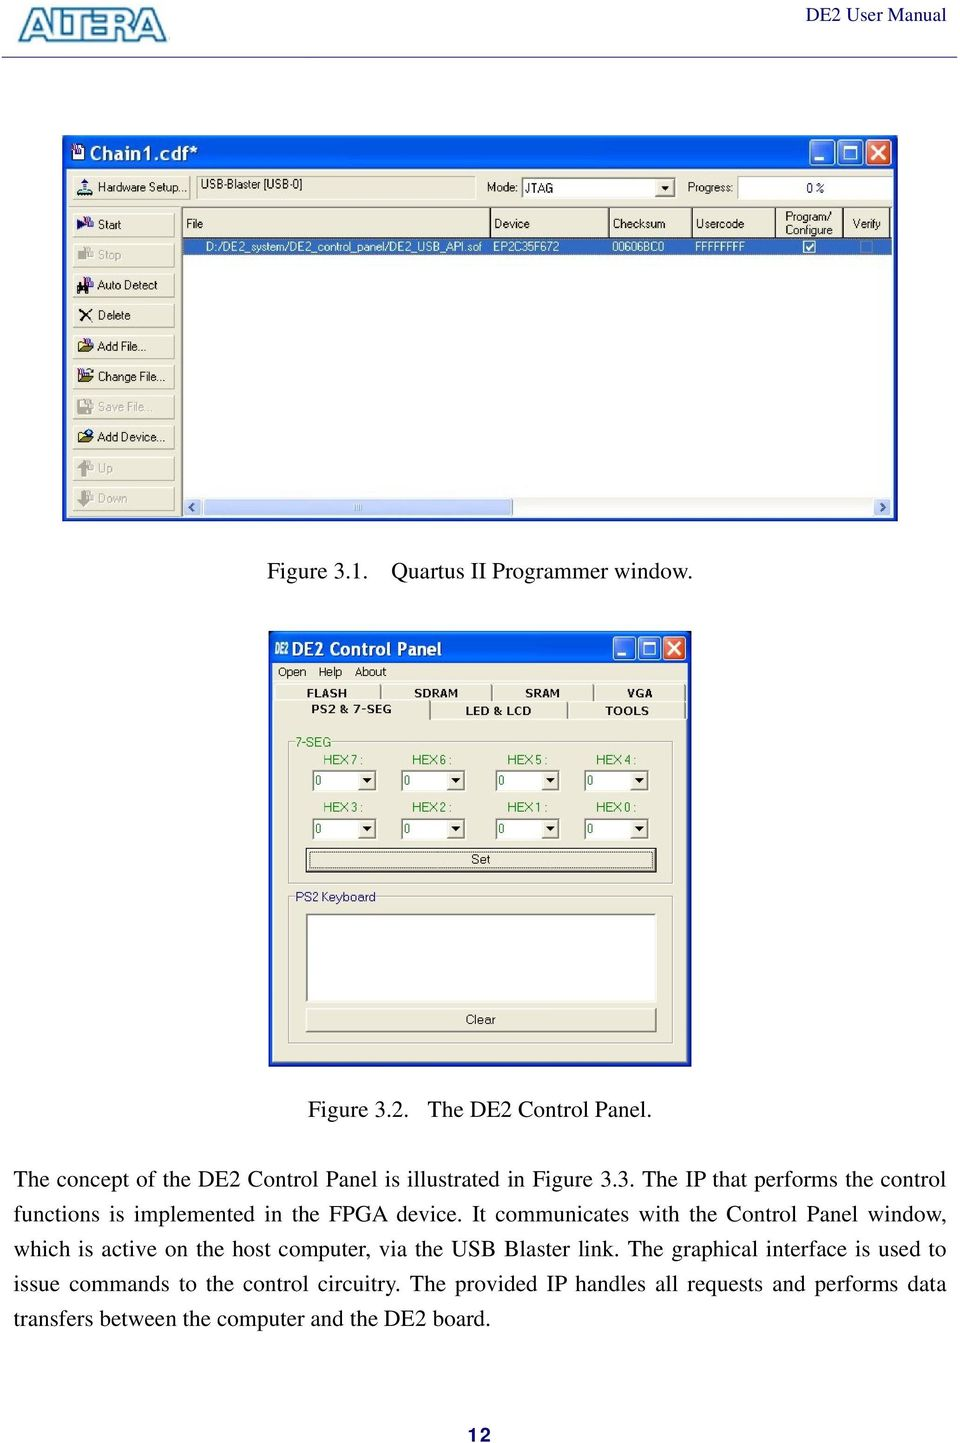 3. The IP that performs the control functions is implemented in the FPGA device.